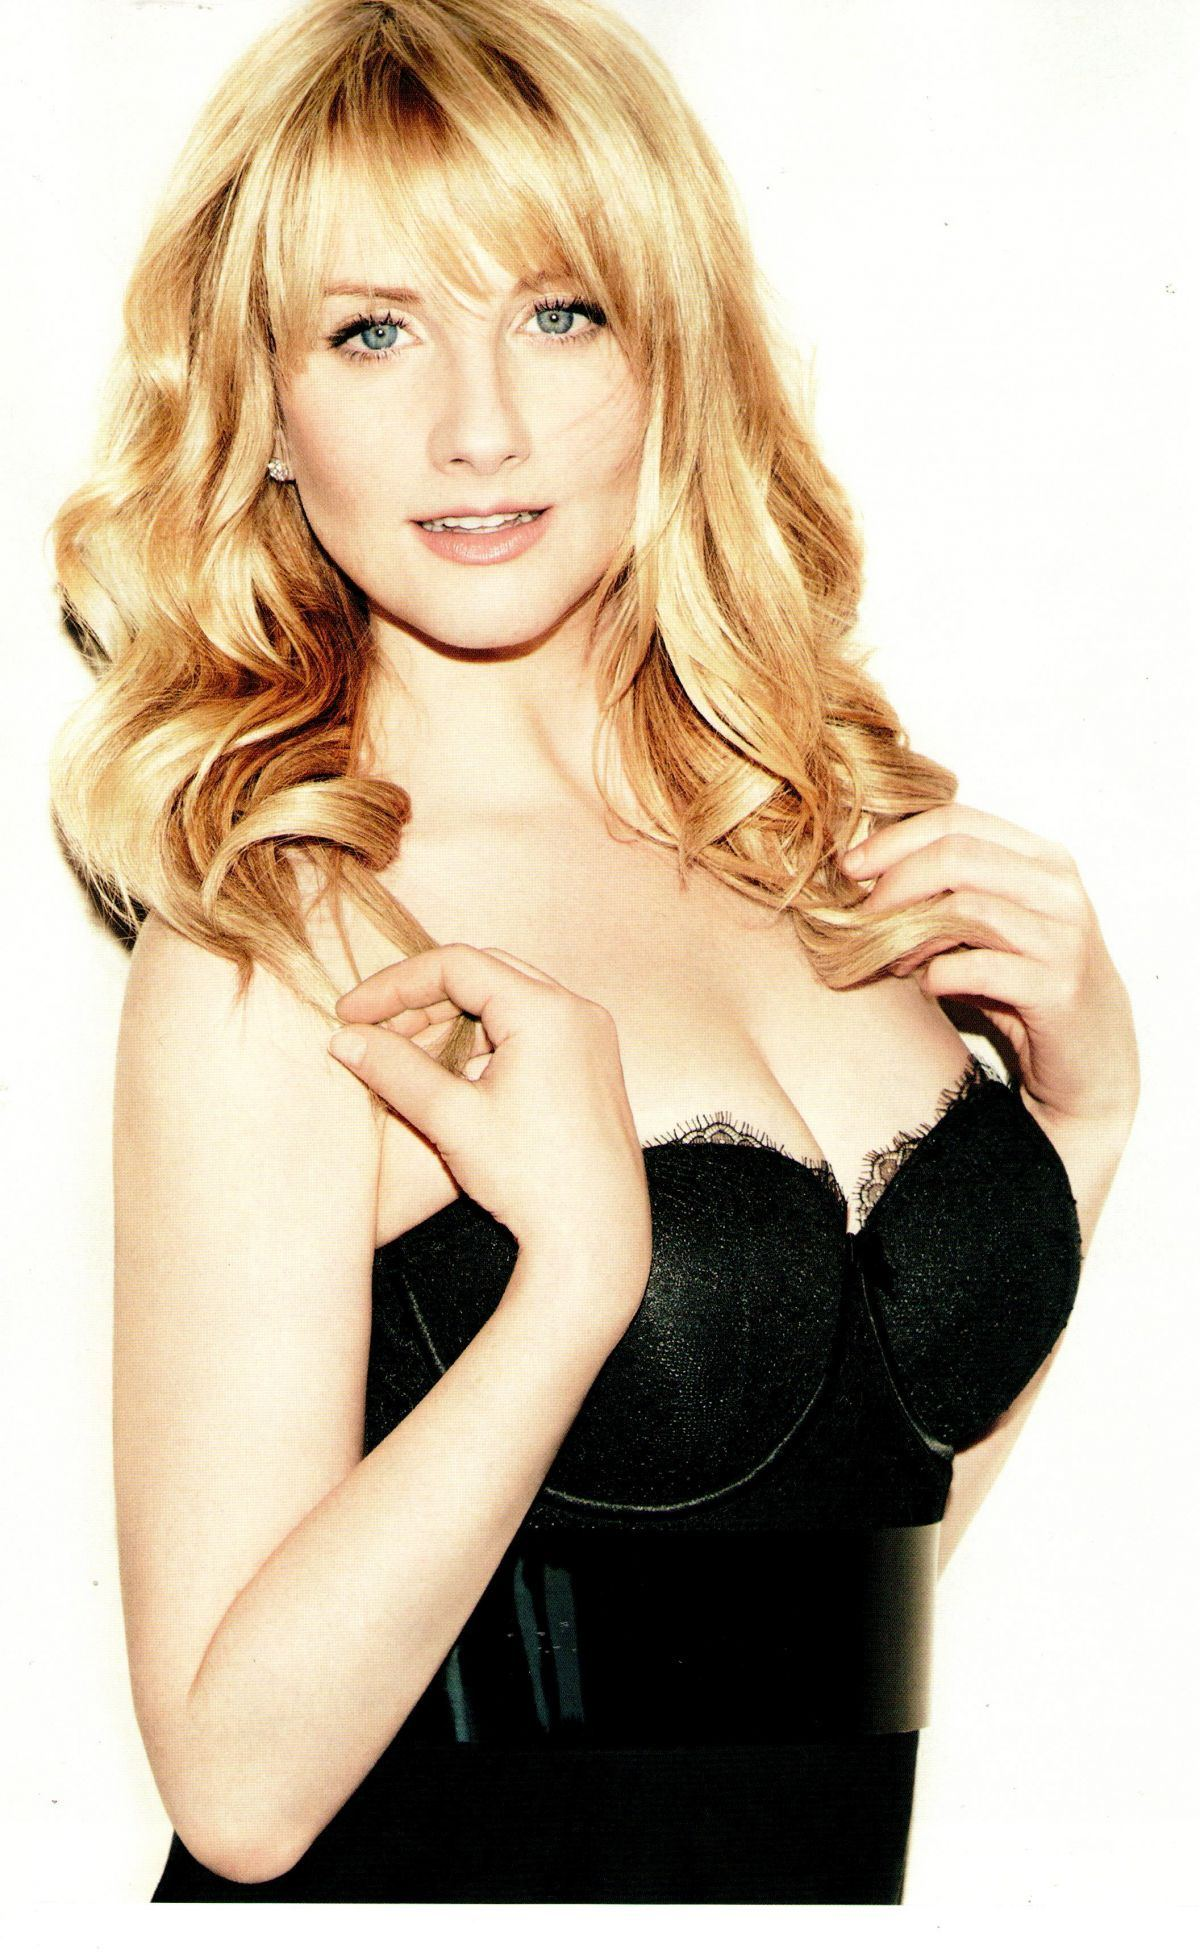 You Melissa rauch hands on tits